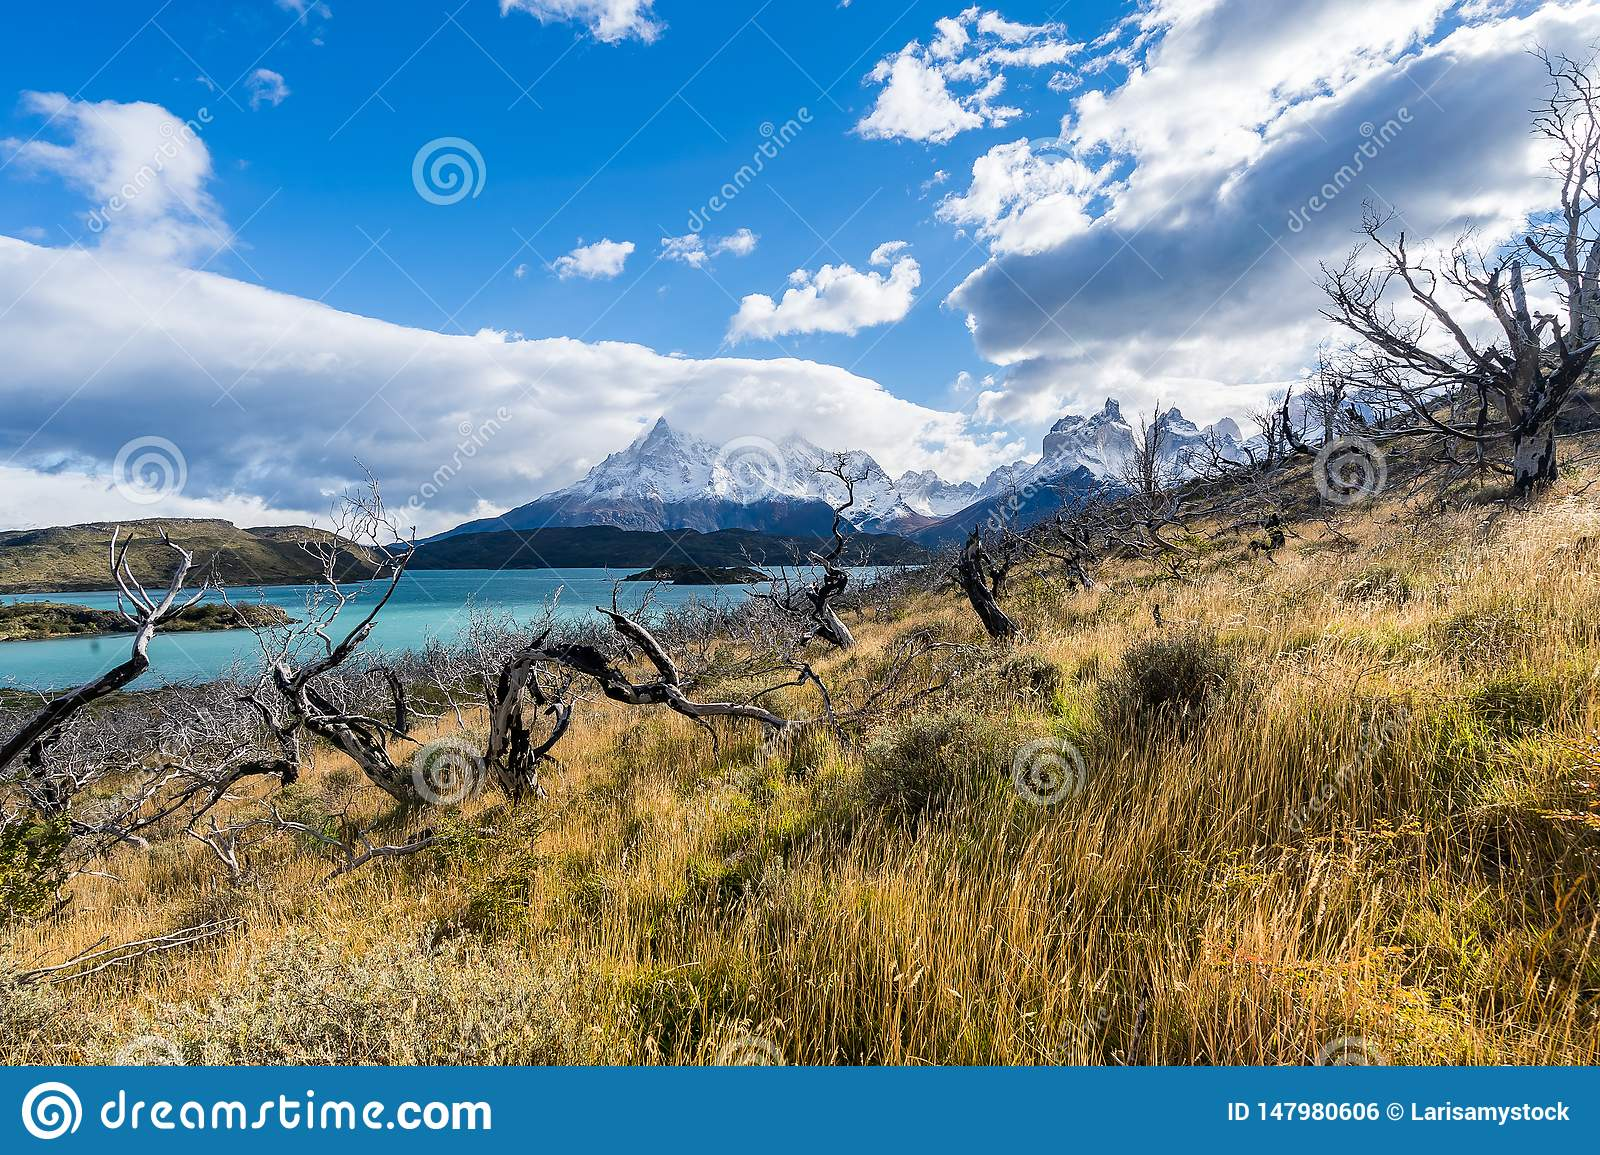 In the Torres del Paine national park, Patagonia, Chile, Lago del Pehoe